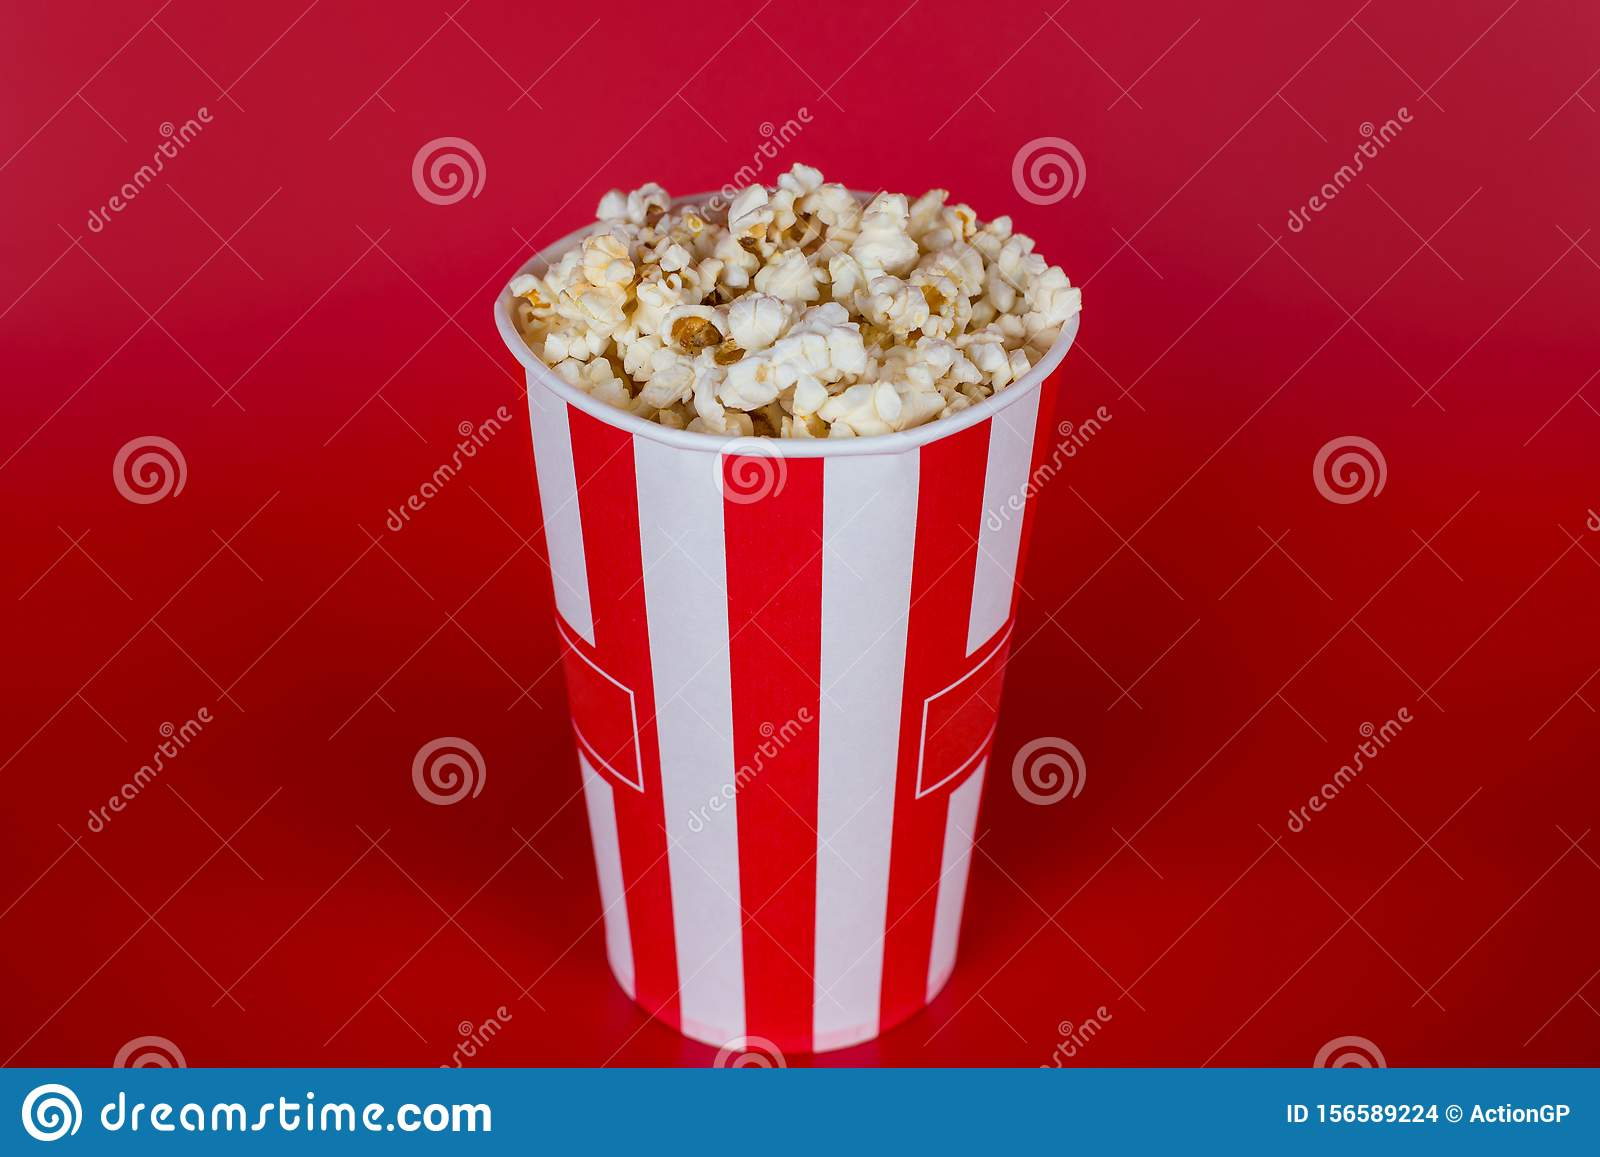 Top above high angle overhead close up view photo of tasty fresh delicious yummy sweet sugary salty popcorn isolated over bright